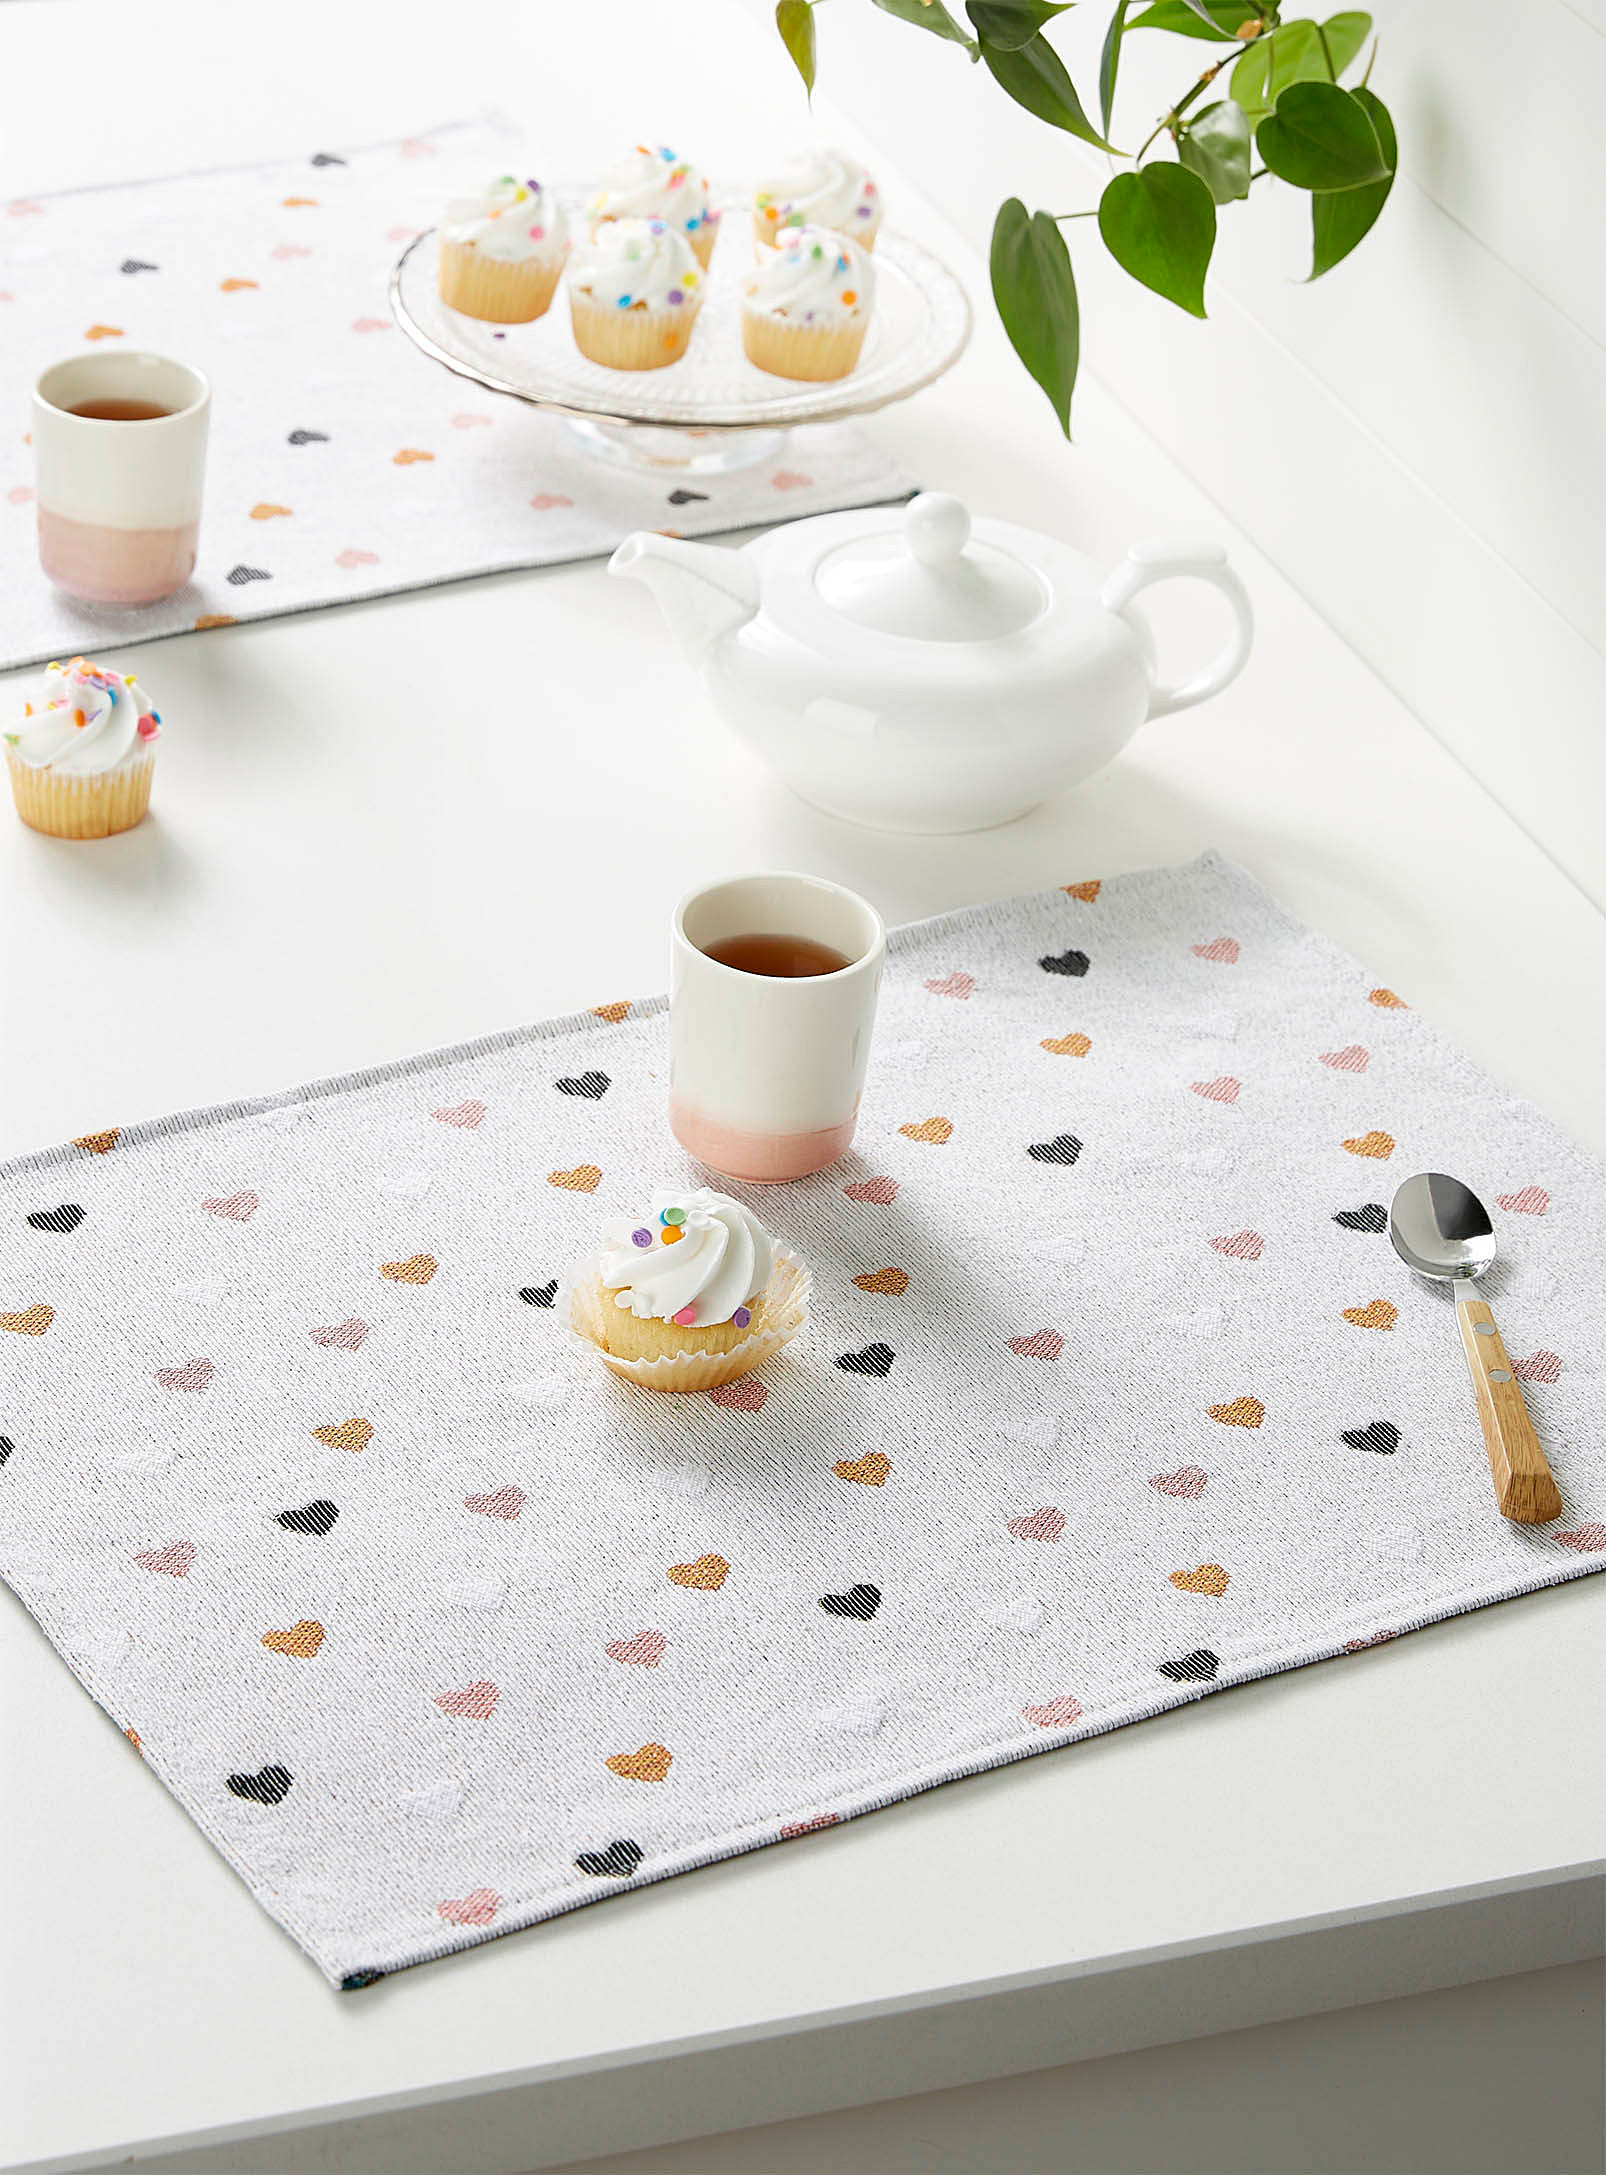 A rectangular cloth placemat on a table with a cupcake, a cup and a spoon on it